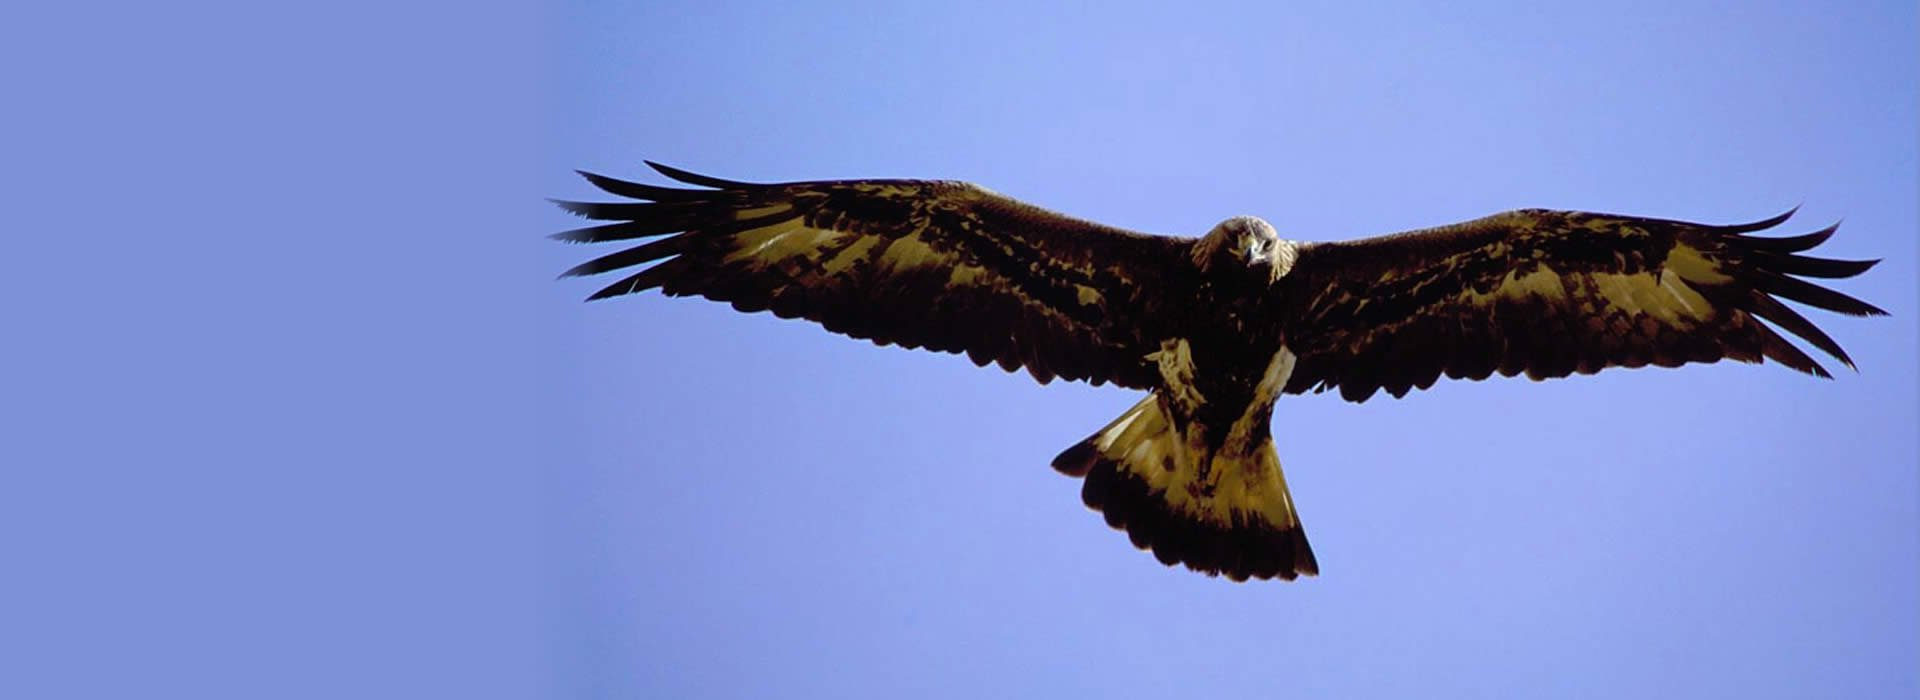 A soaring Golden Eagle